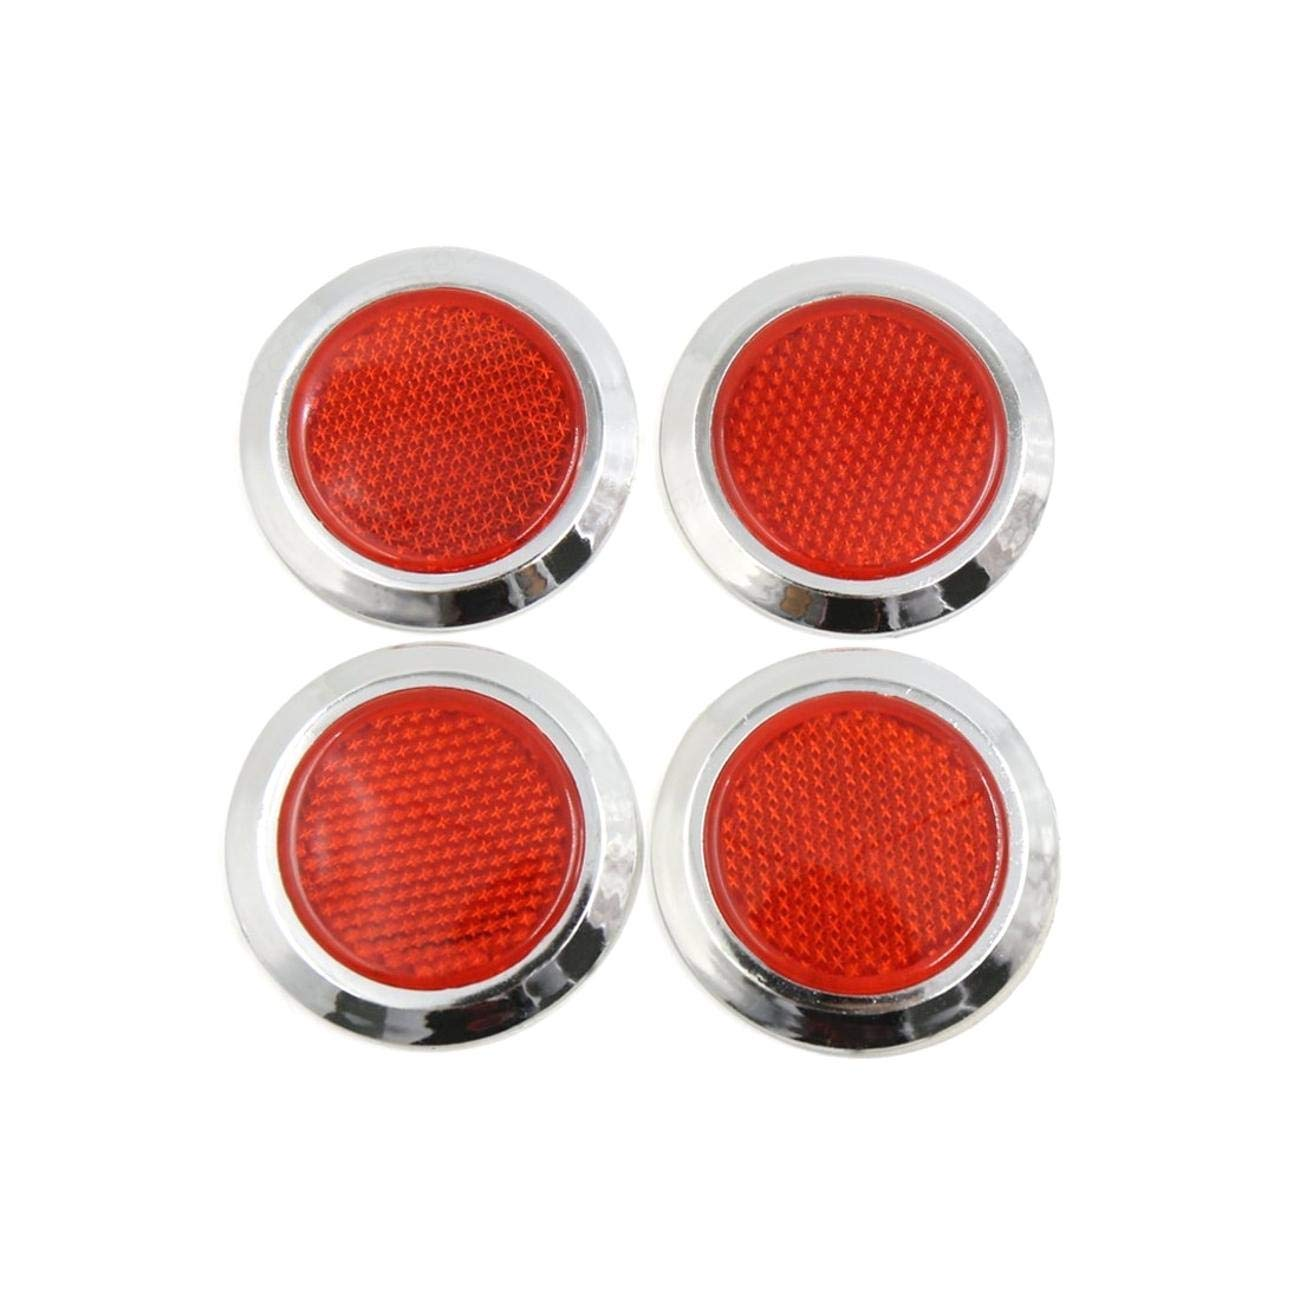 4pcs Red Silver Tone Self Adhesive Reflector Car Reflective Sticker